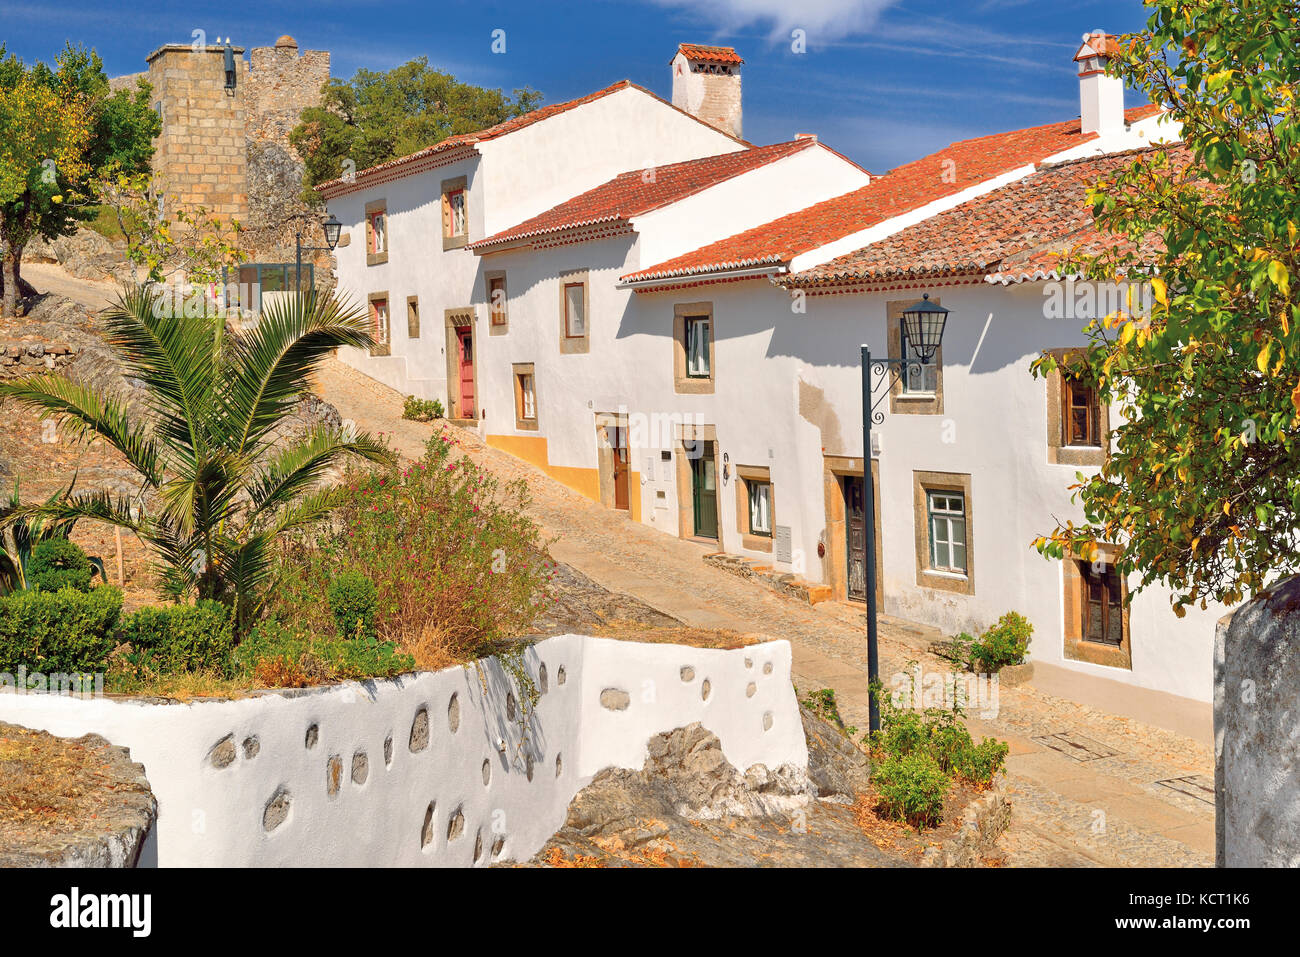 Portugal: Picturesque small road with white washed houses leading to  medieval castle of Marvao - Stock Image